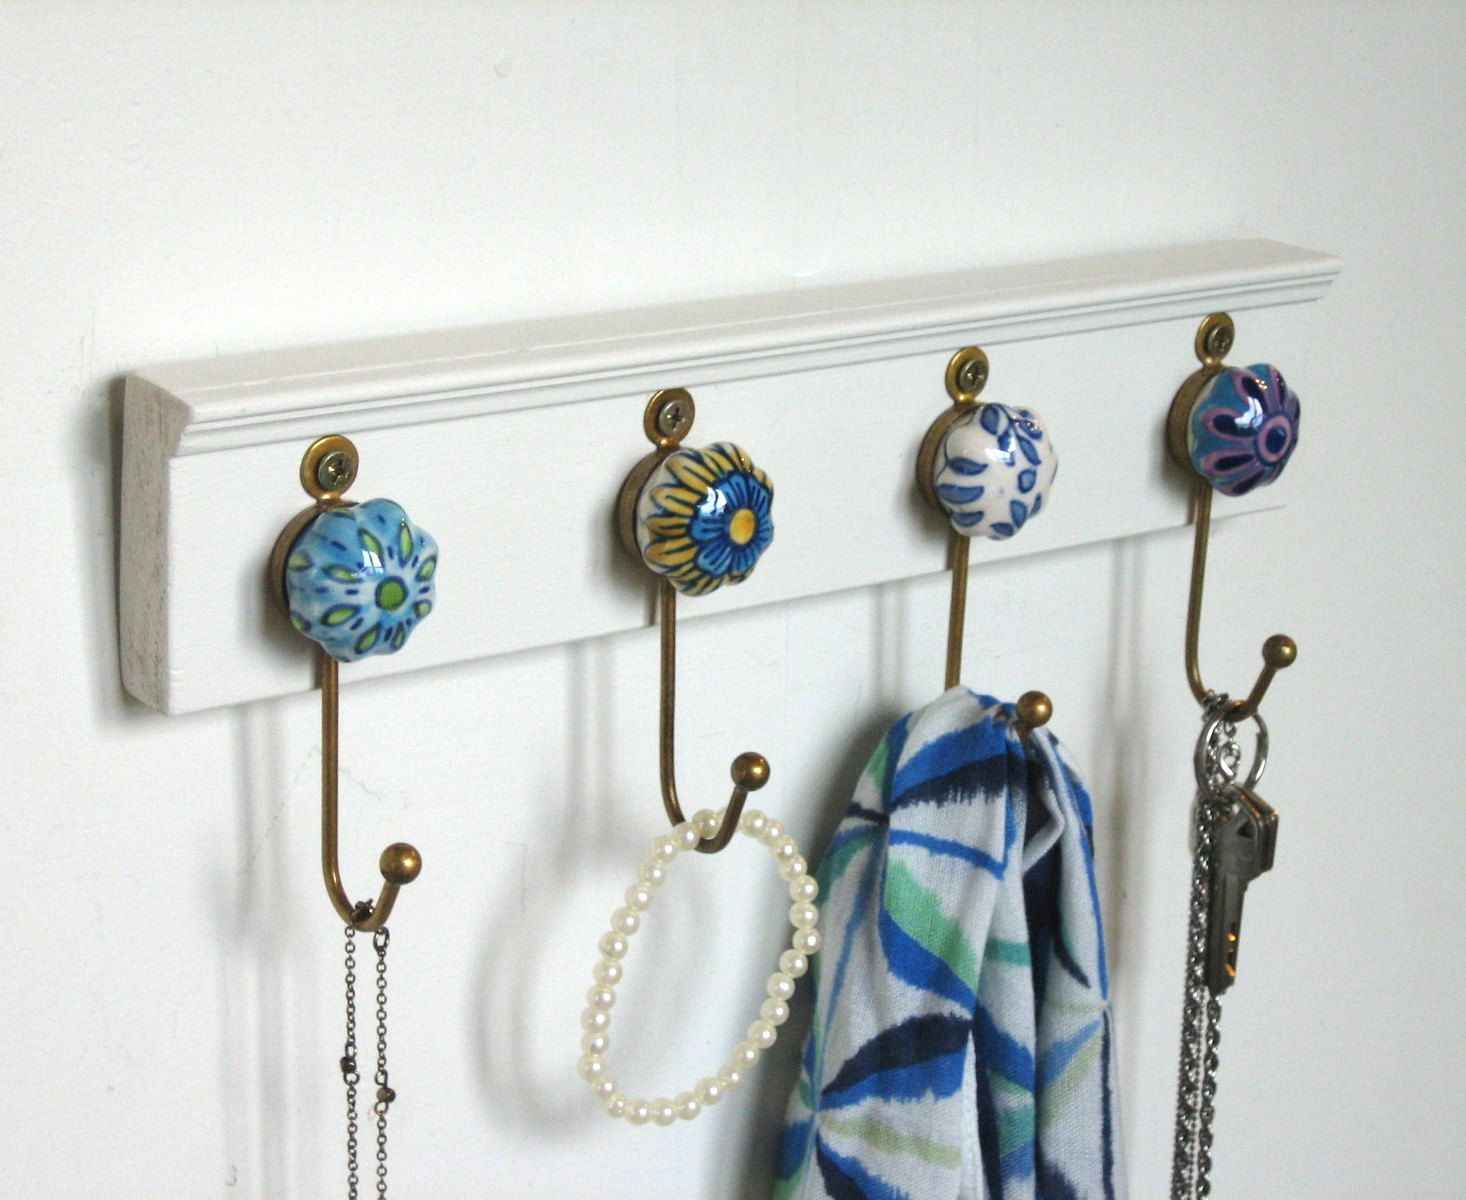 Wall Hooks / Key Rack / Necklace Hanger with 4 Ceramic and